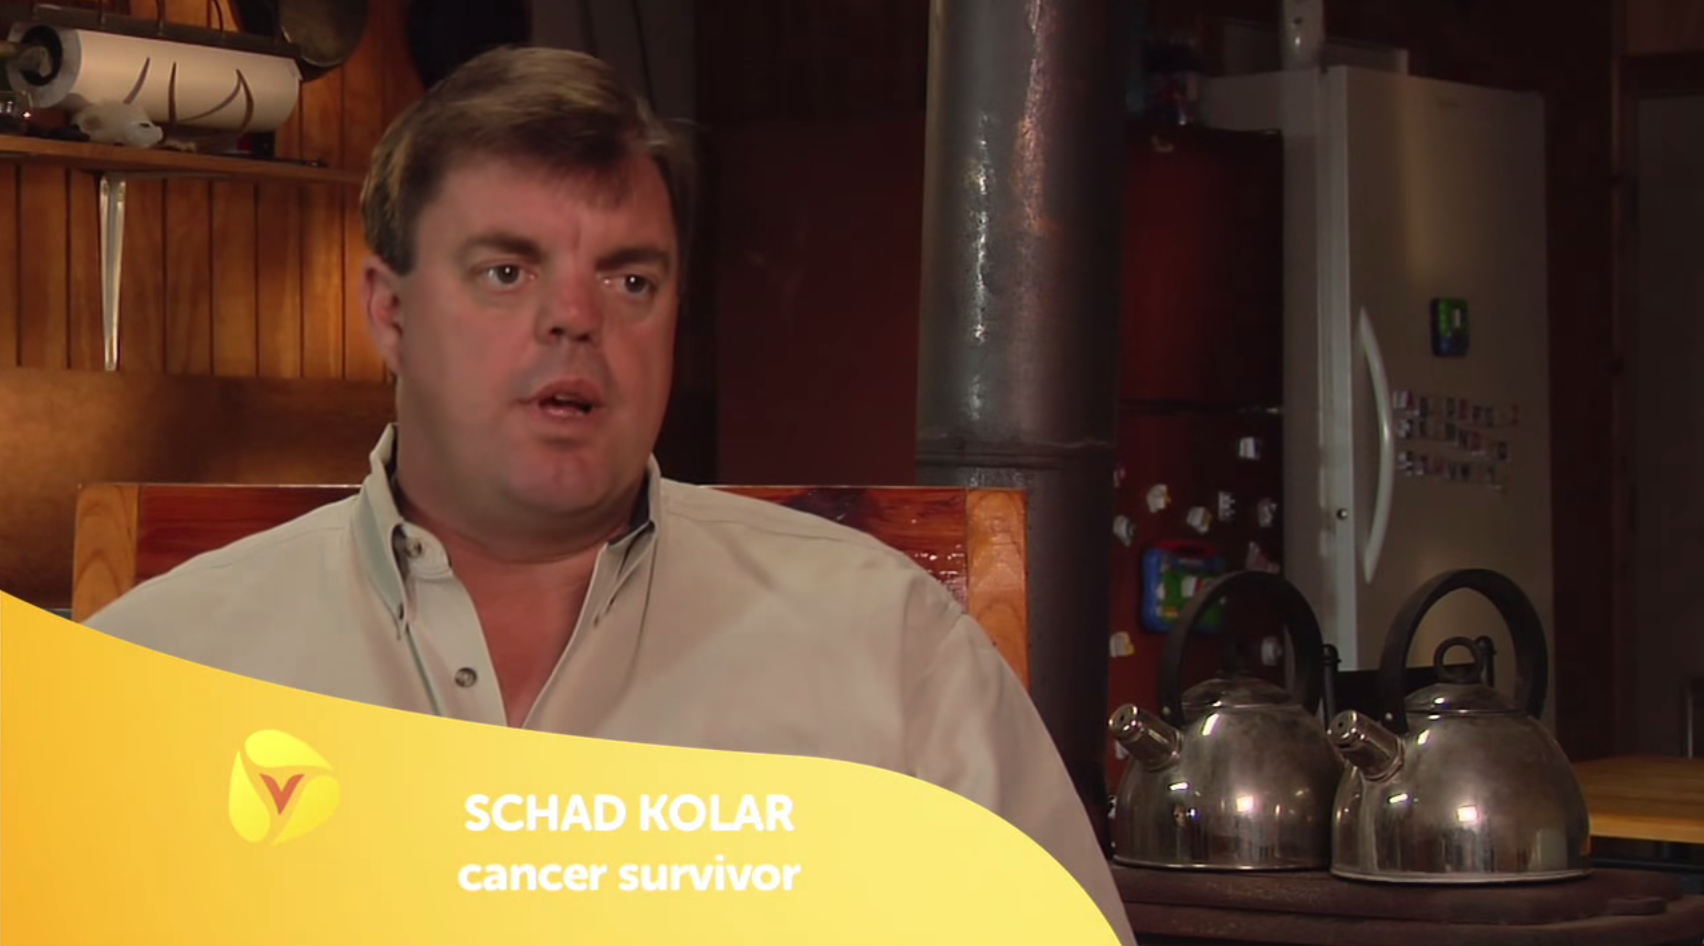 Man cures cancerous tumors with help of diet